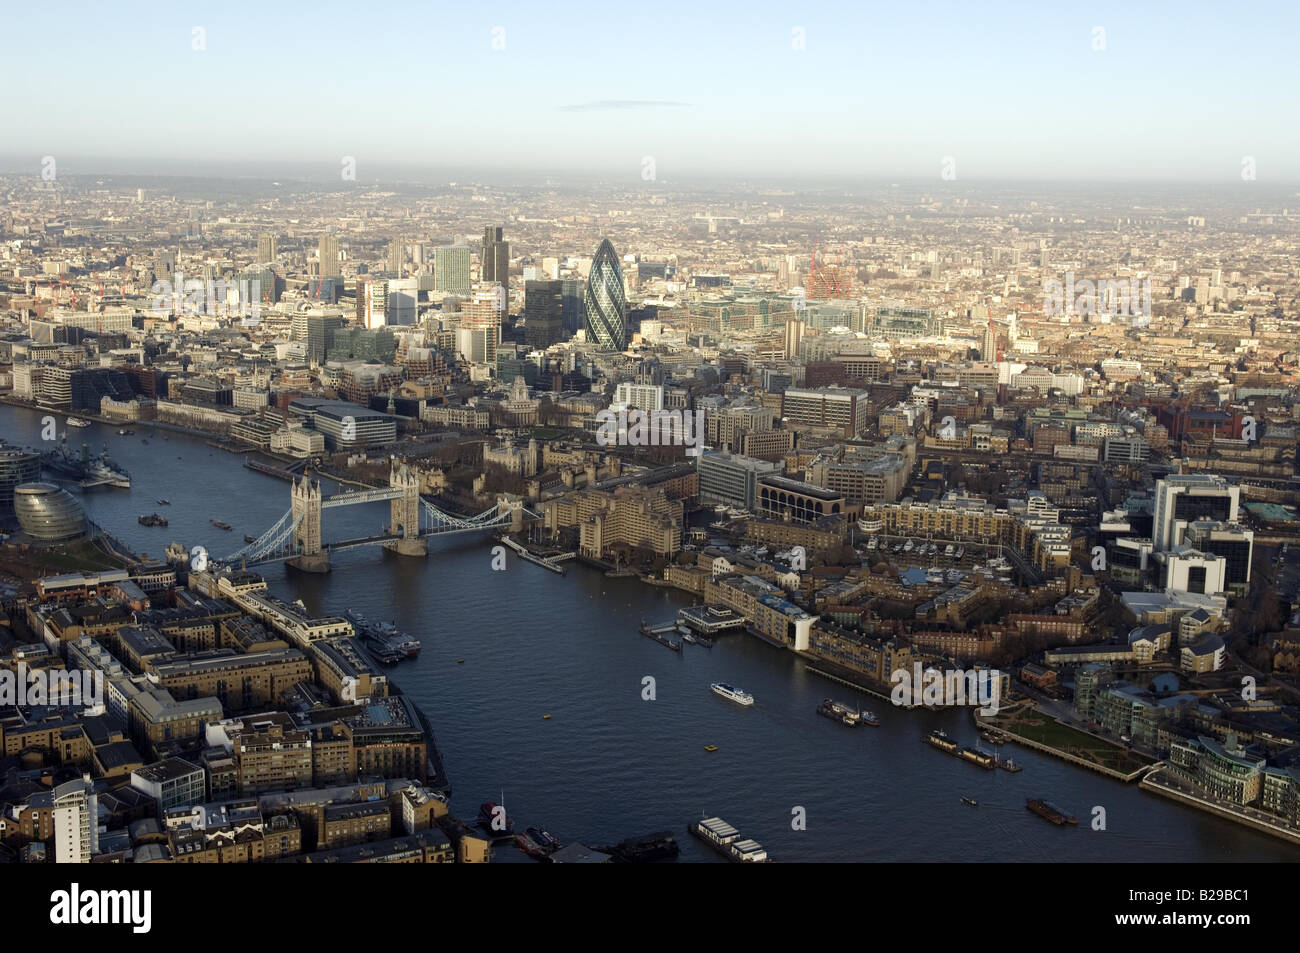 The City of London Date 12 03 2008 Ref ZB648 111149 0049 COMPULSORY CREDIT World Pictures Photoshot - Stock Image